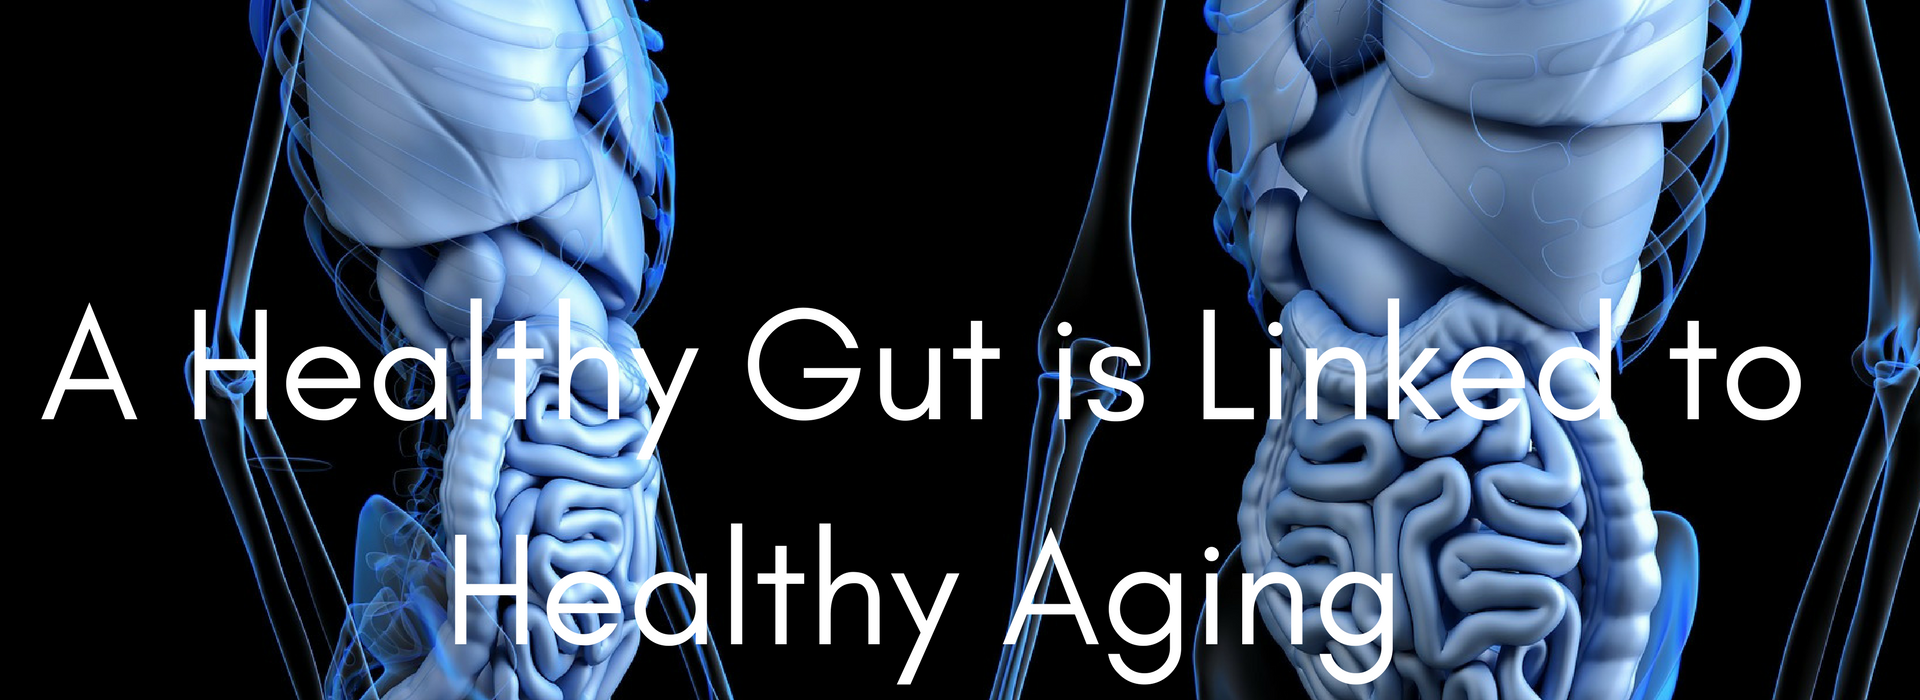 A Healthy Gut is Linked to Healthy Aging